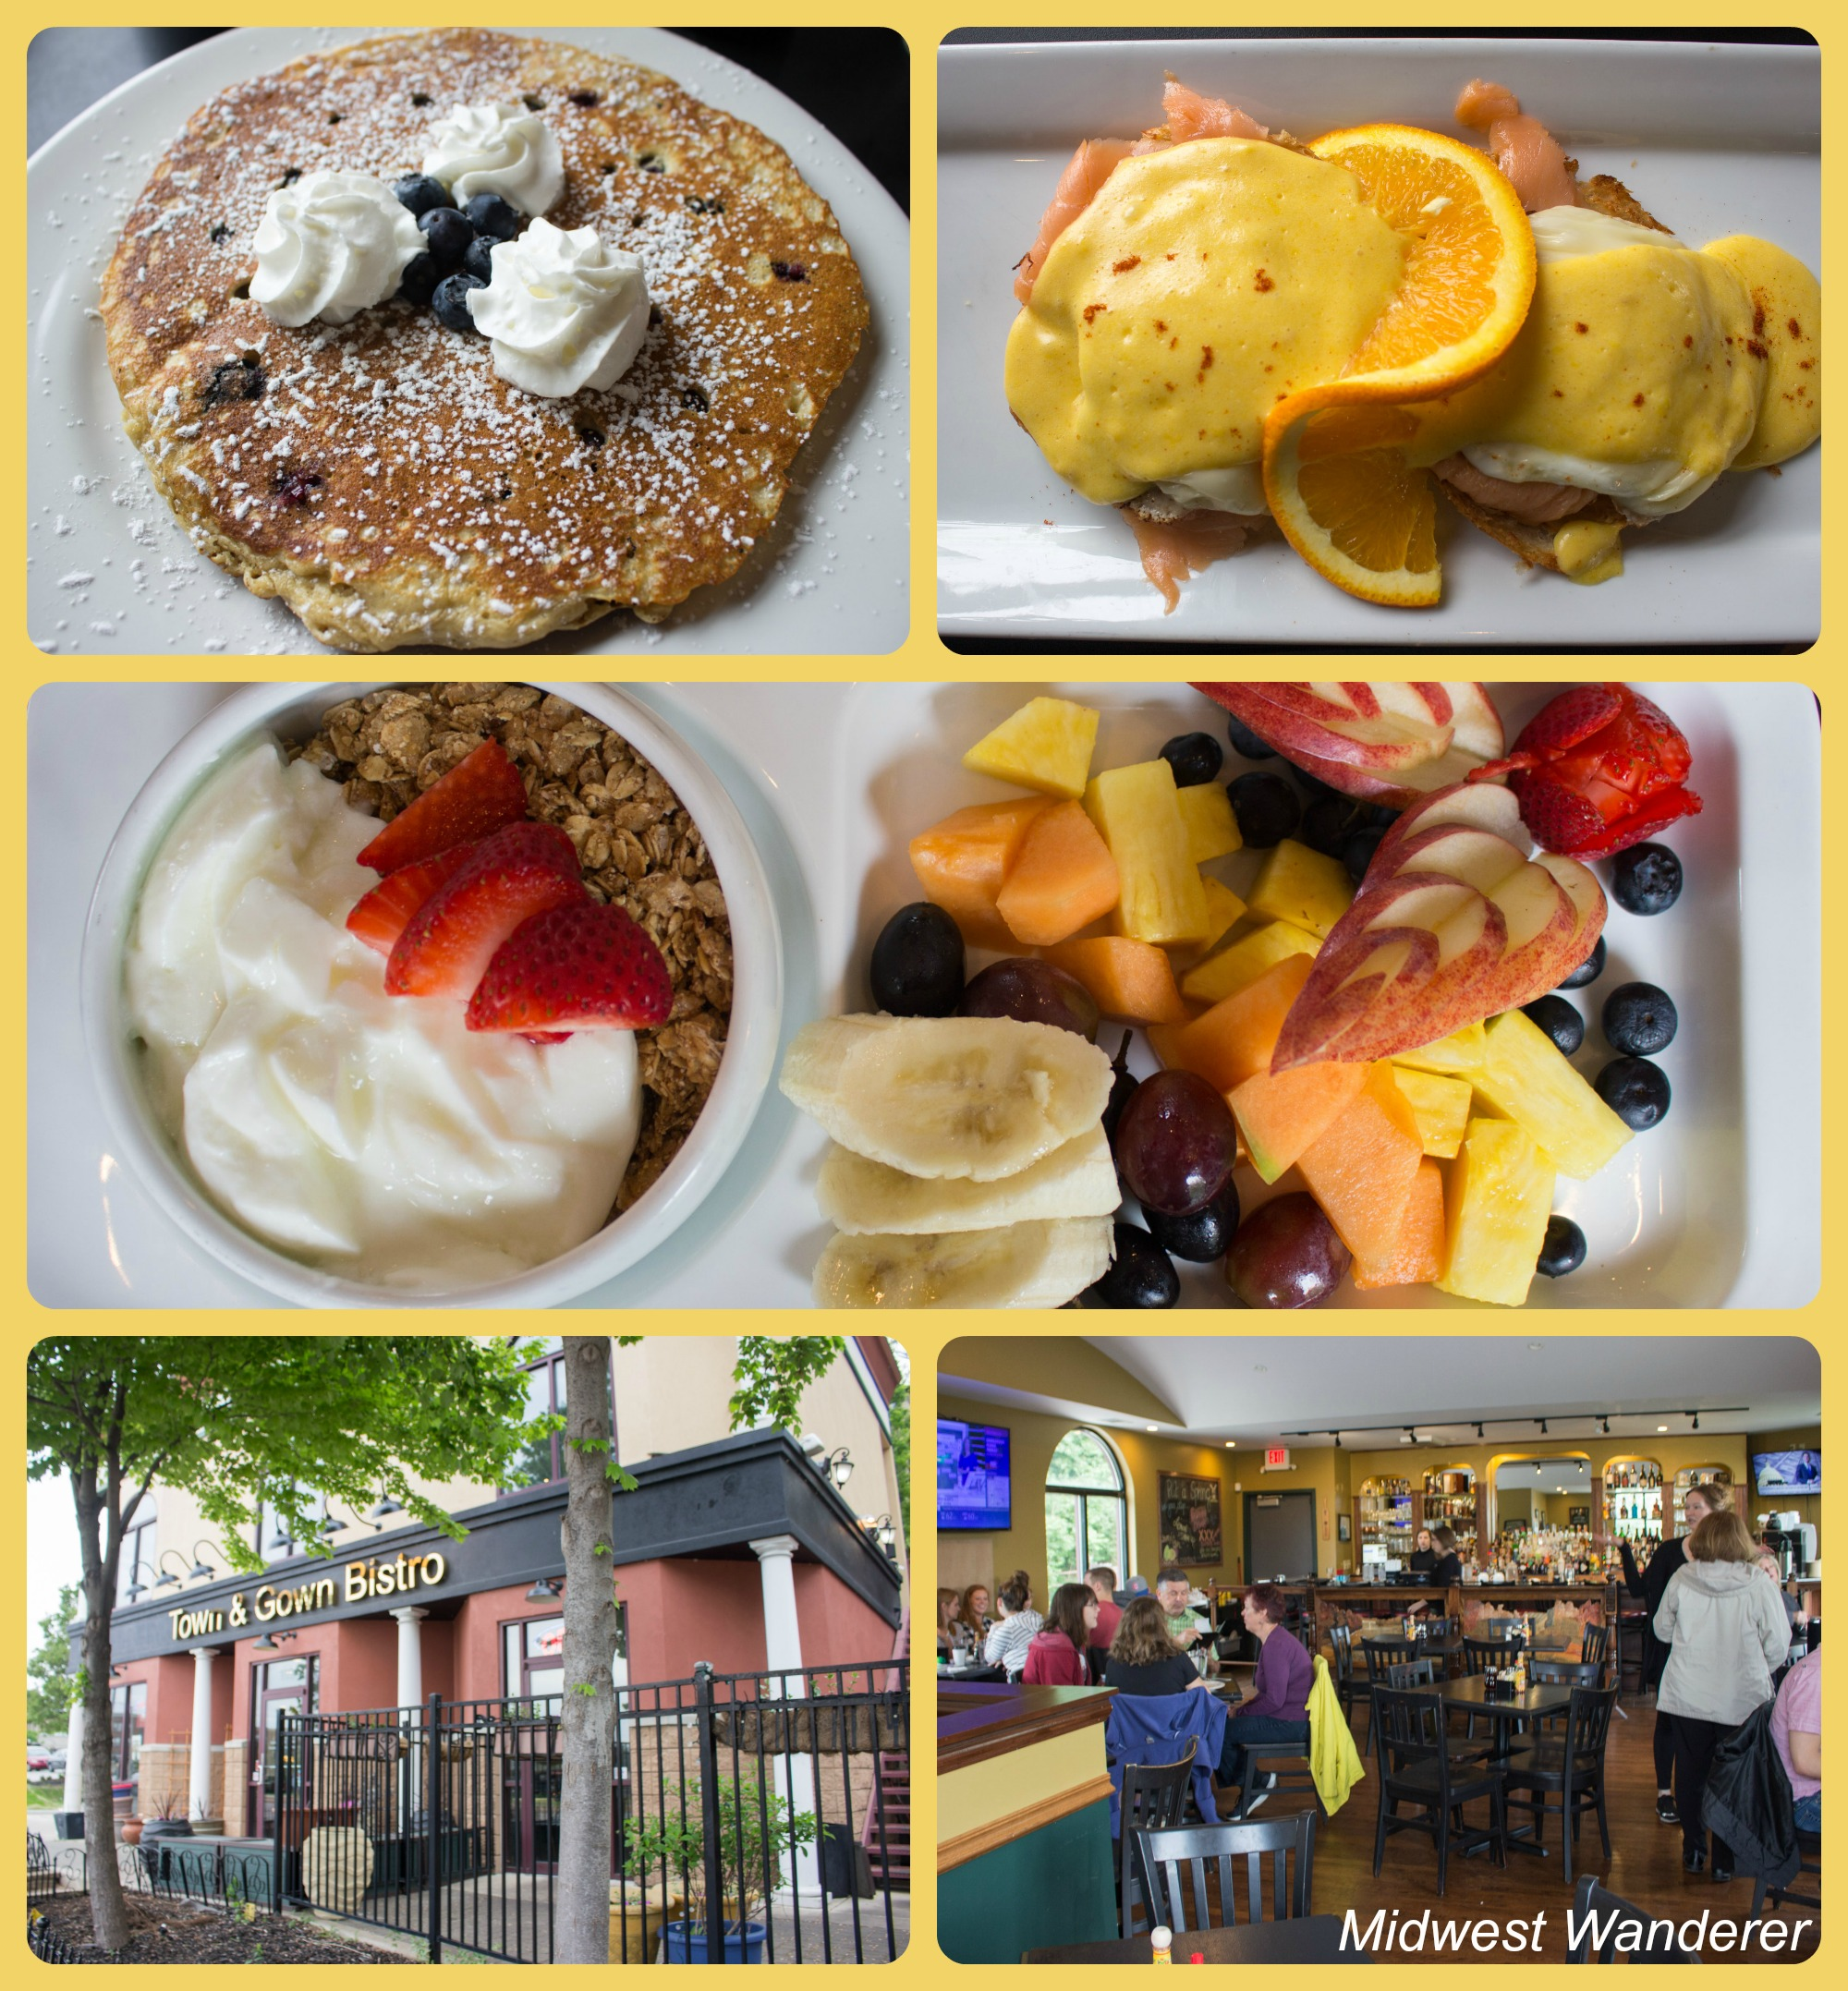 Town and Gown Bistro - West Lafayette